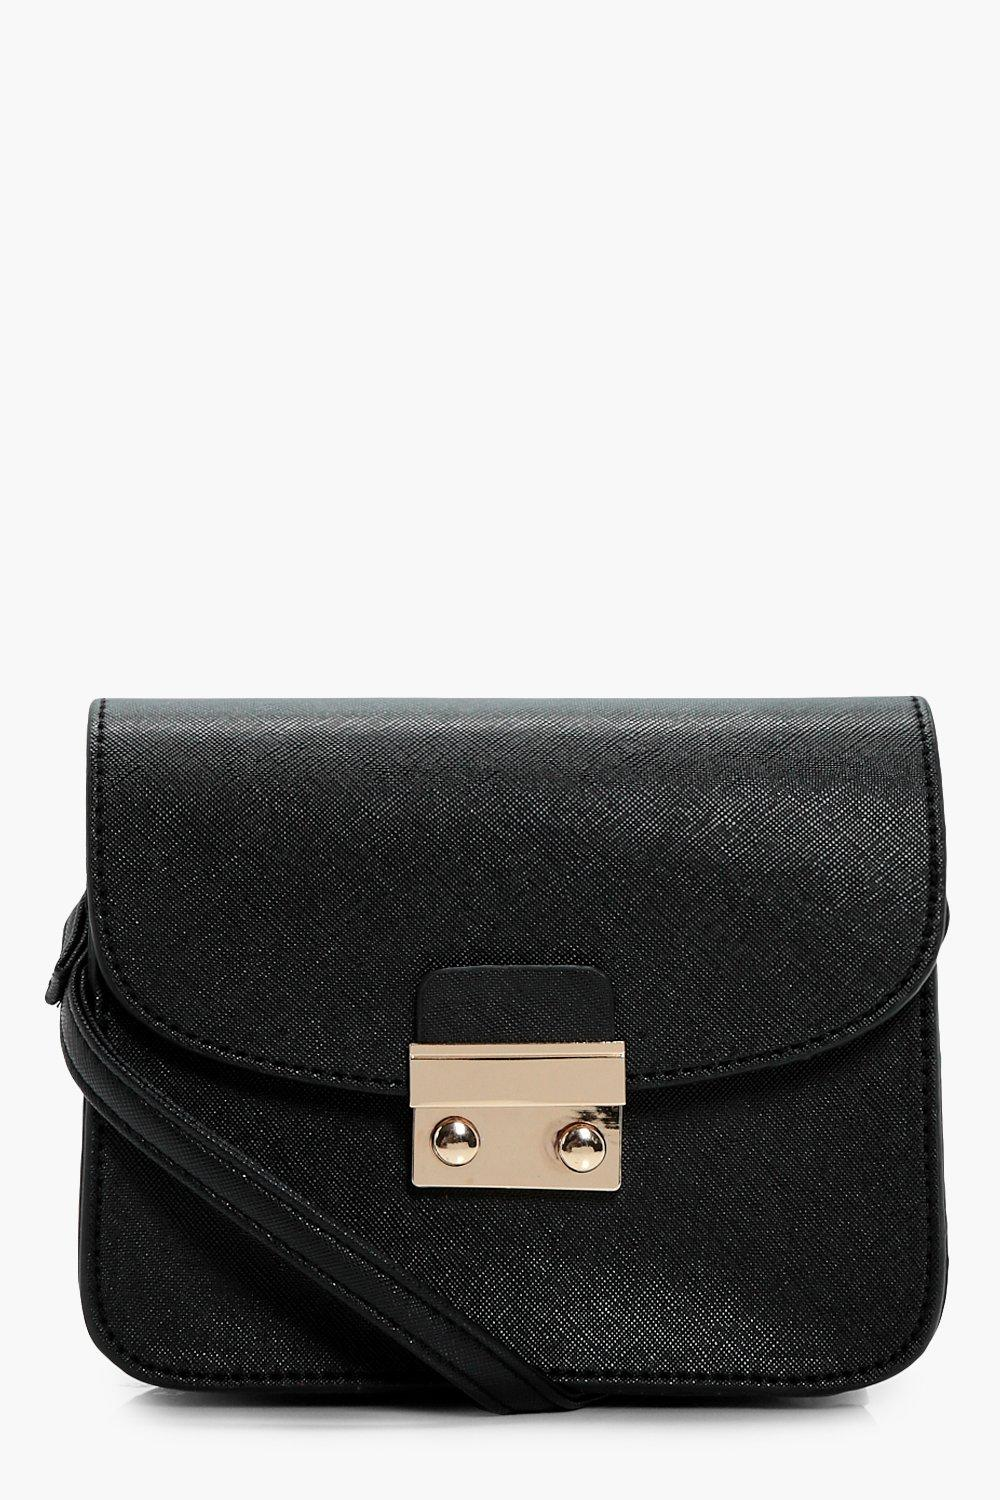 Lock Front Mini Cross Body Bag - black - Eve Lock